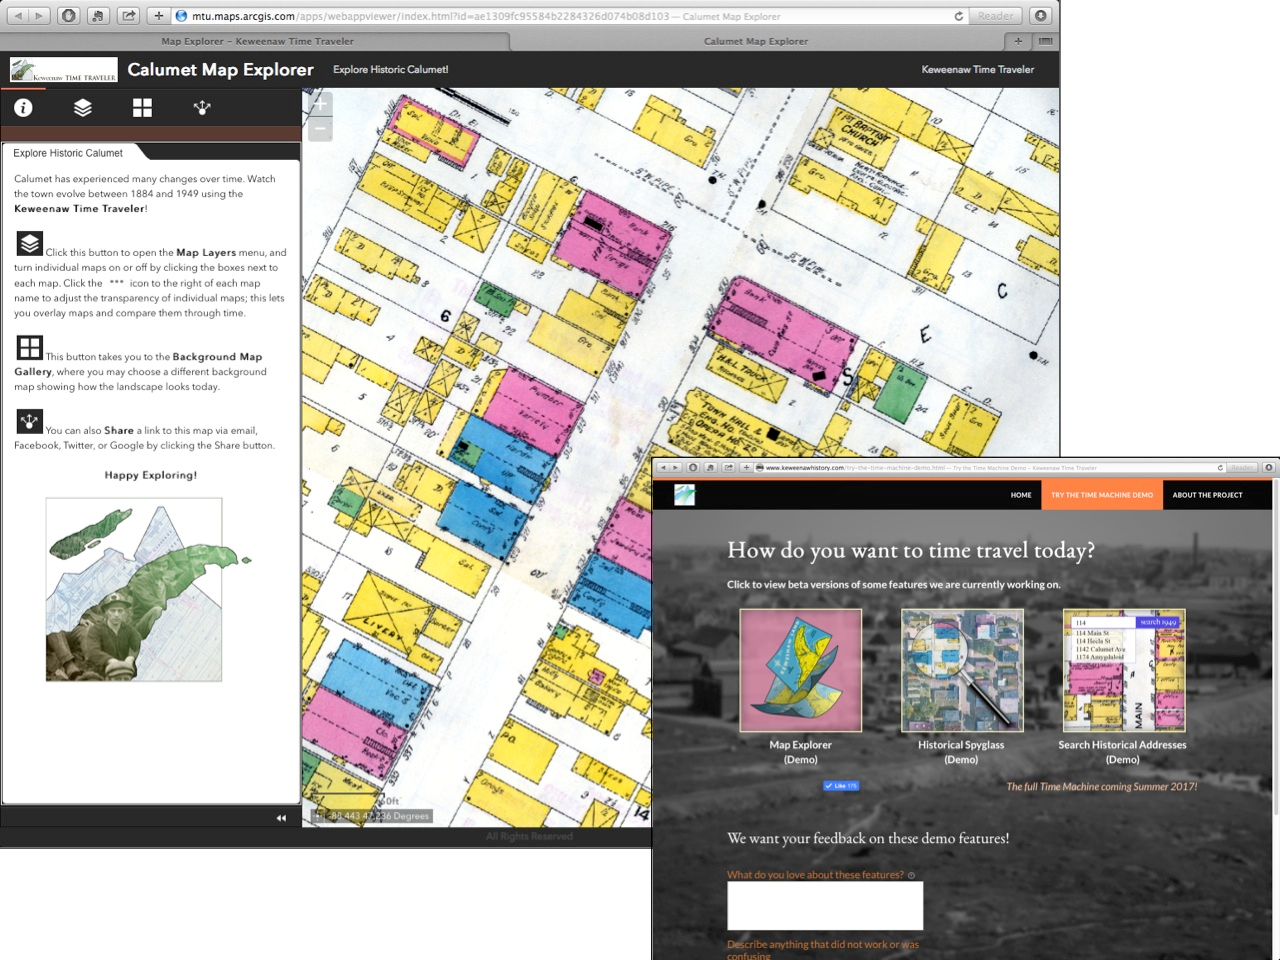 The KeTT prototype web apps, developed in ArcGIS Online Web AppBuilder, allowed the team to gain valuable experience in developing requirements for the forthcoming full public launch of the KeTT Project.